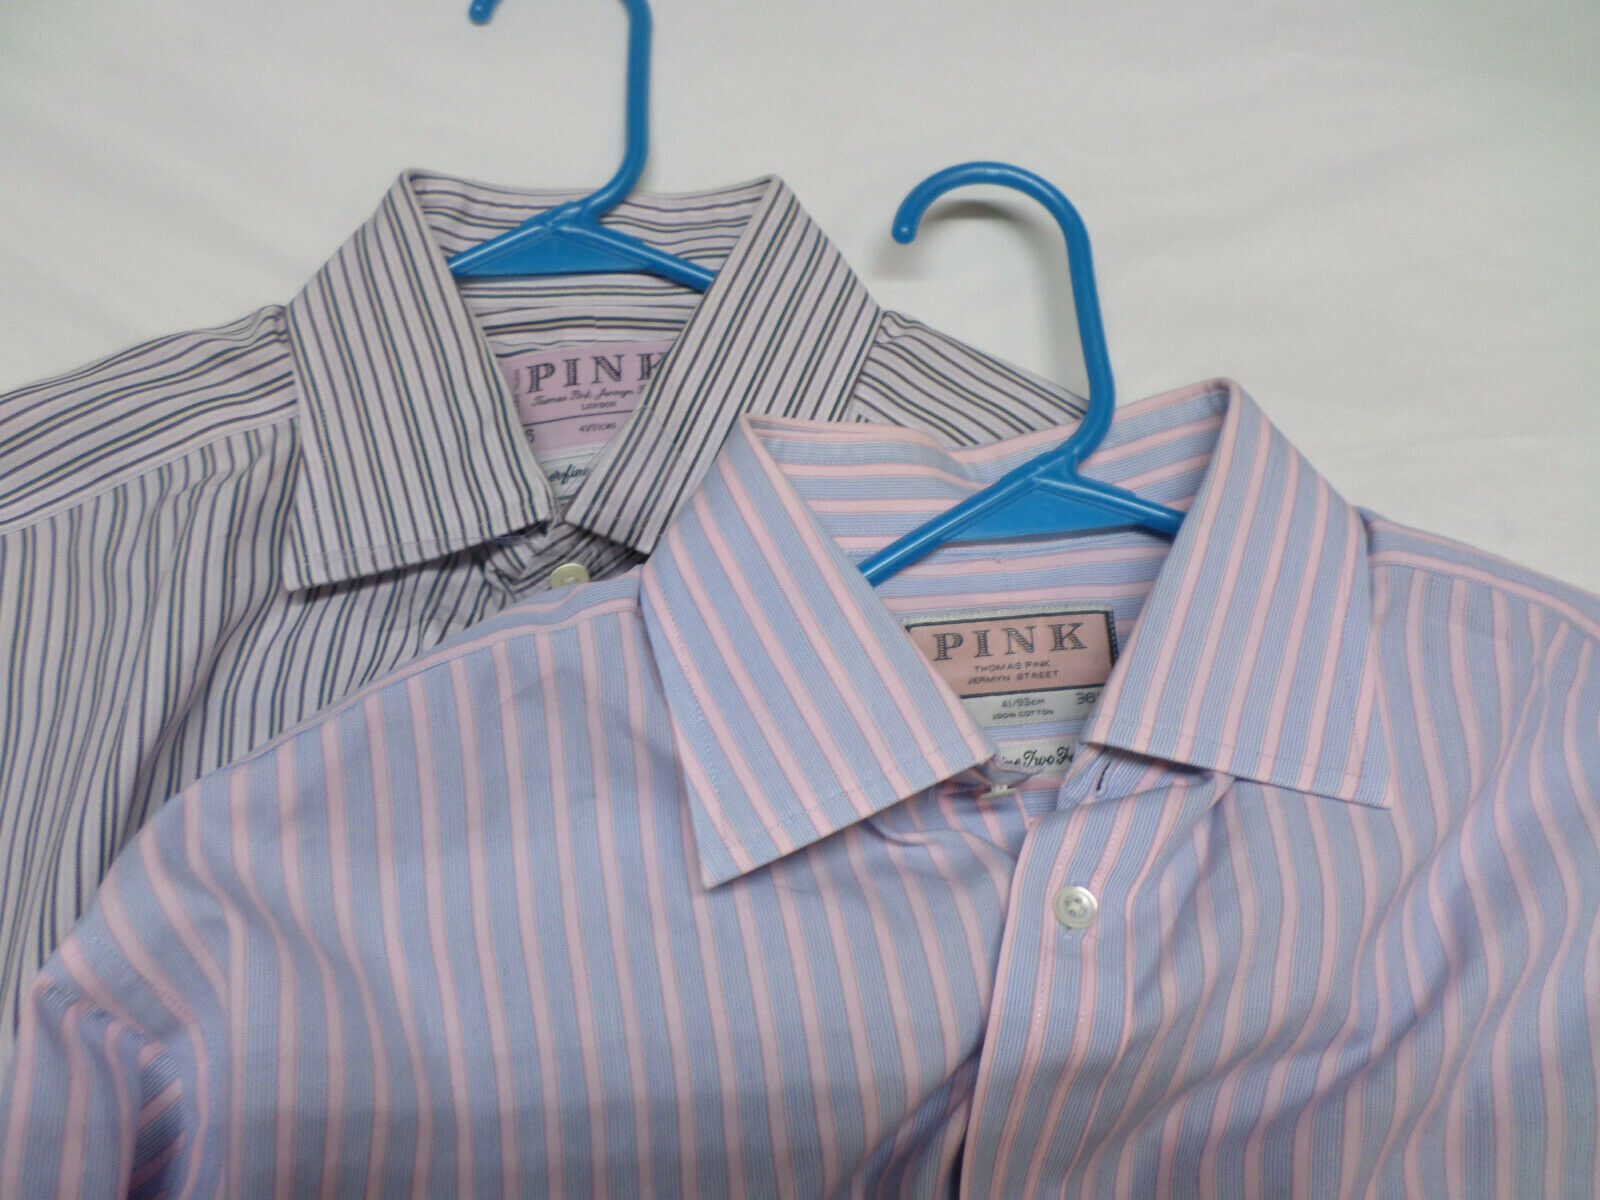 2 PINK Thomas Pink Superfine Two Fold French Cuff Button Shirt Men's 16x36 1 2